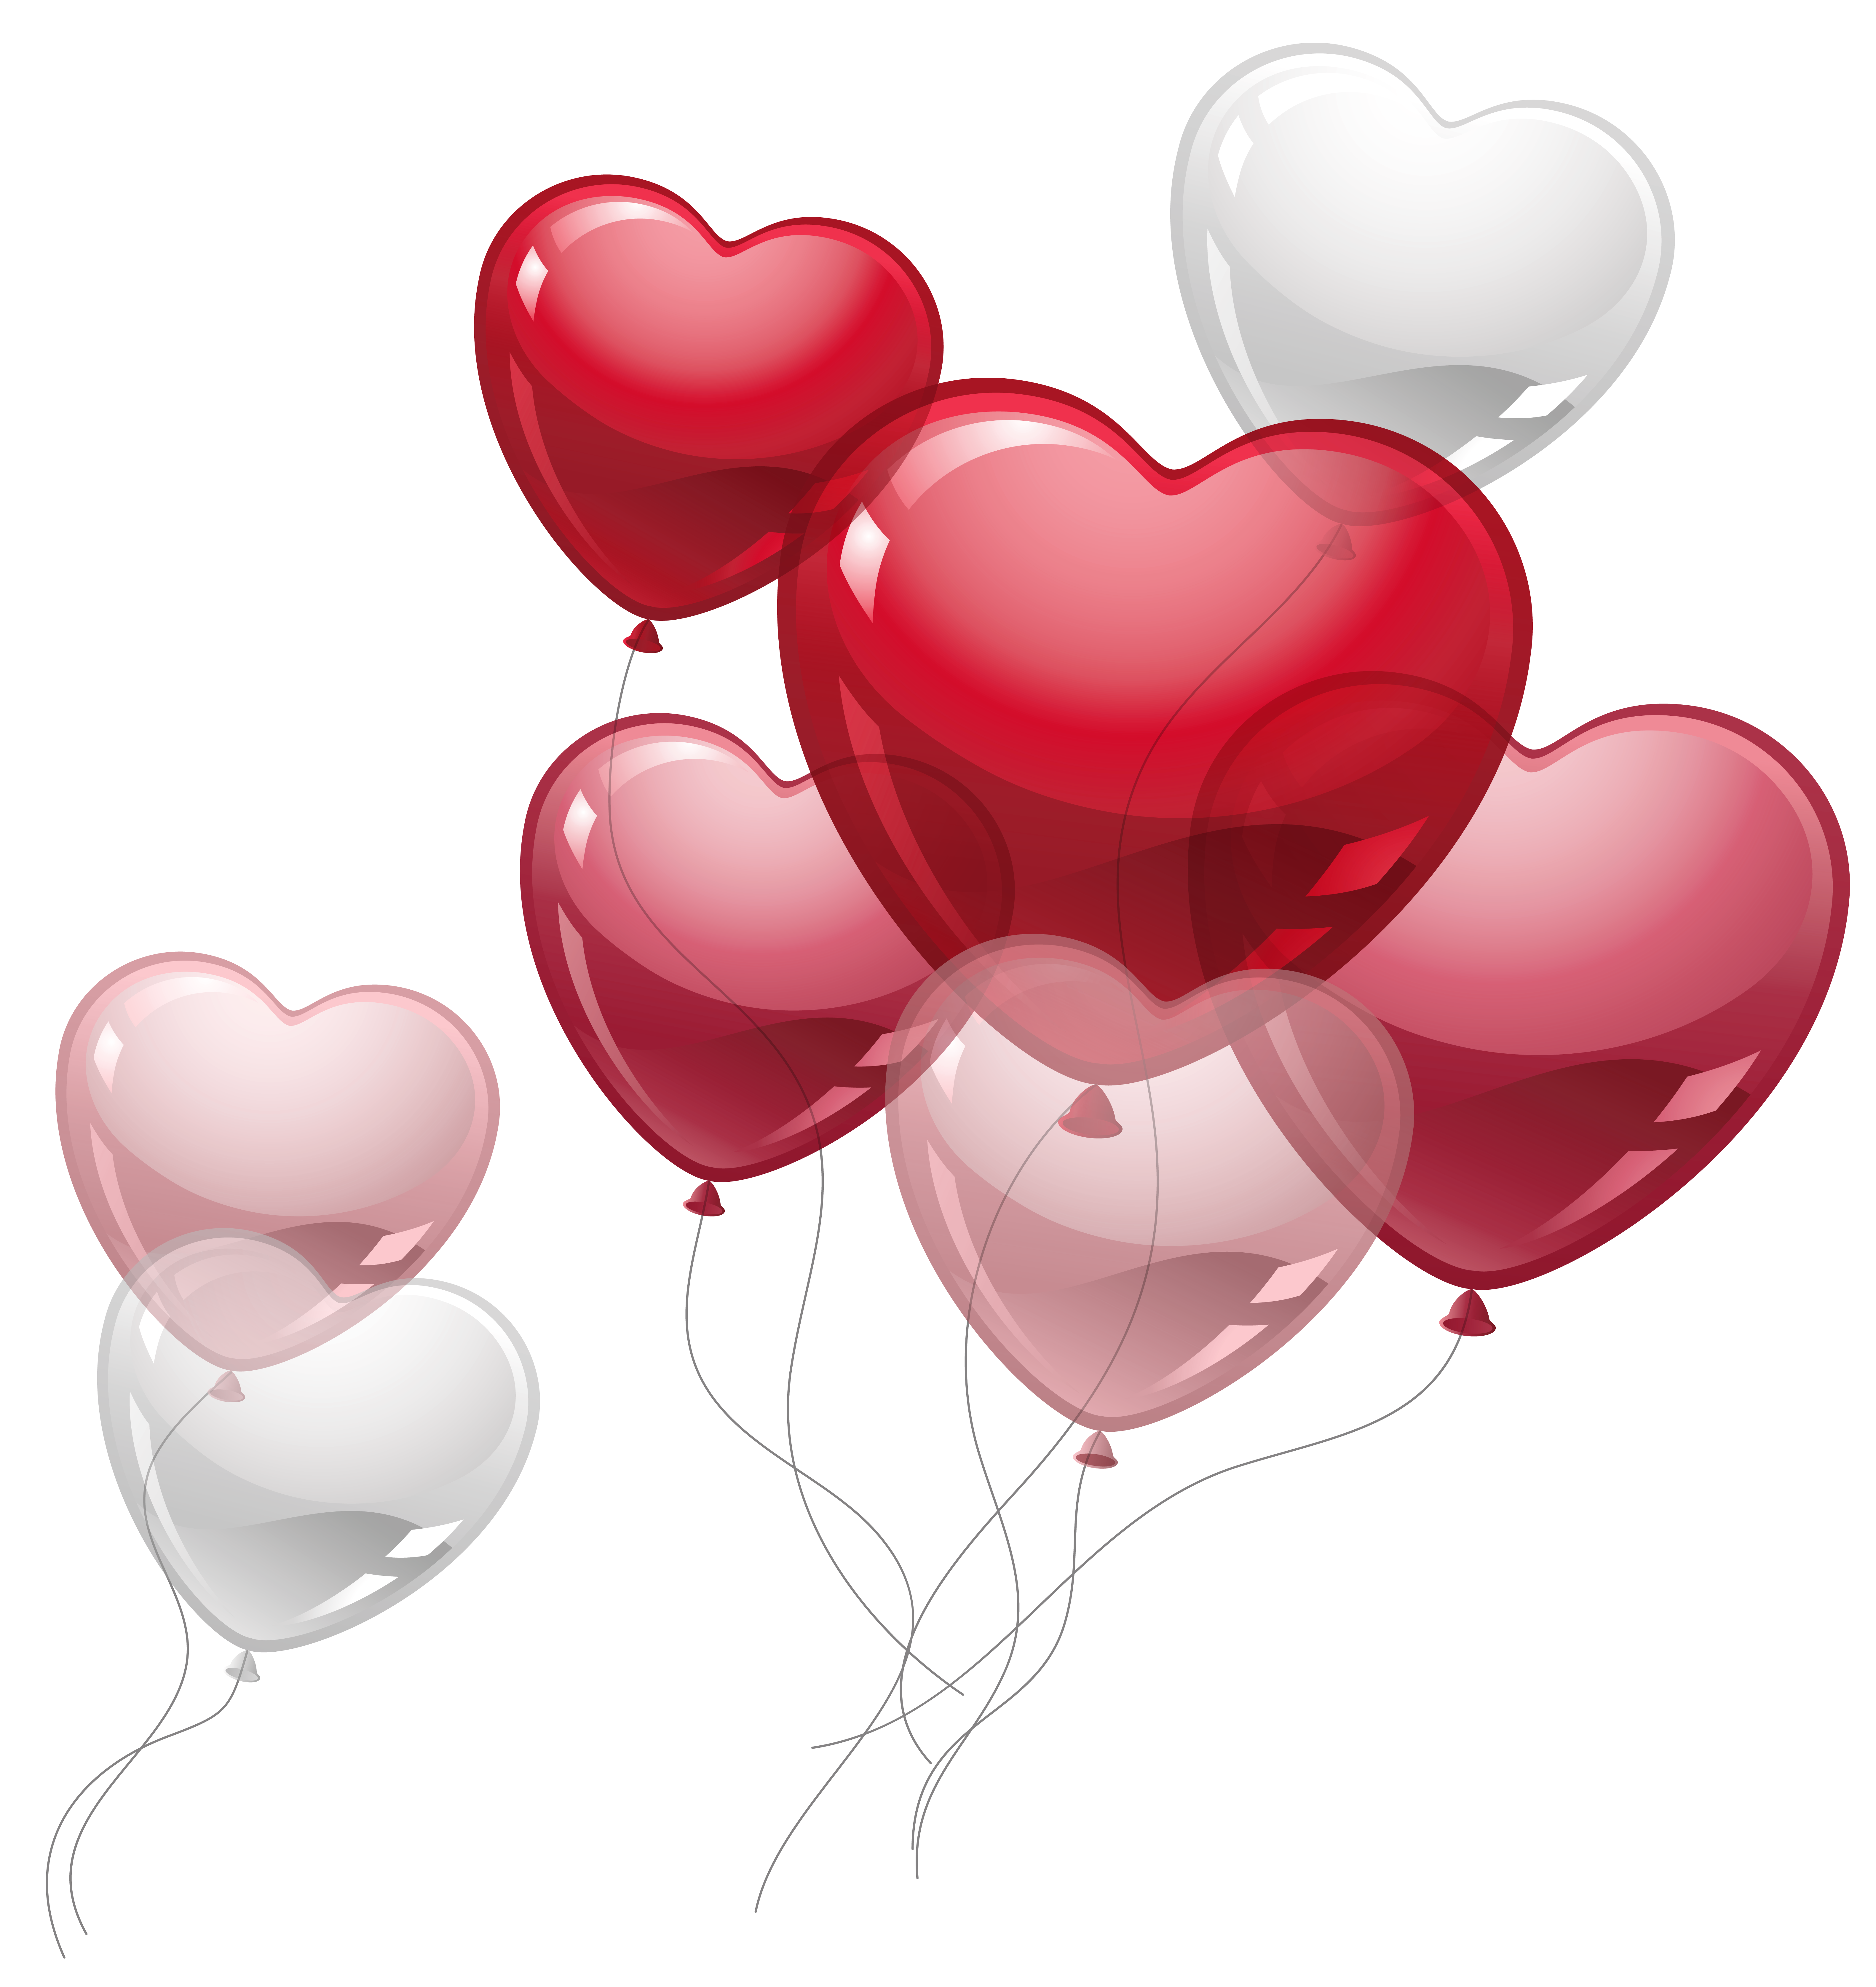 Heart balloons clipart picture. Cute hearts png